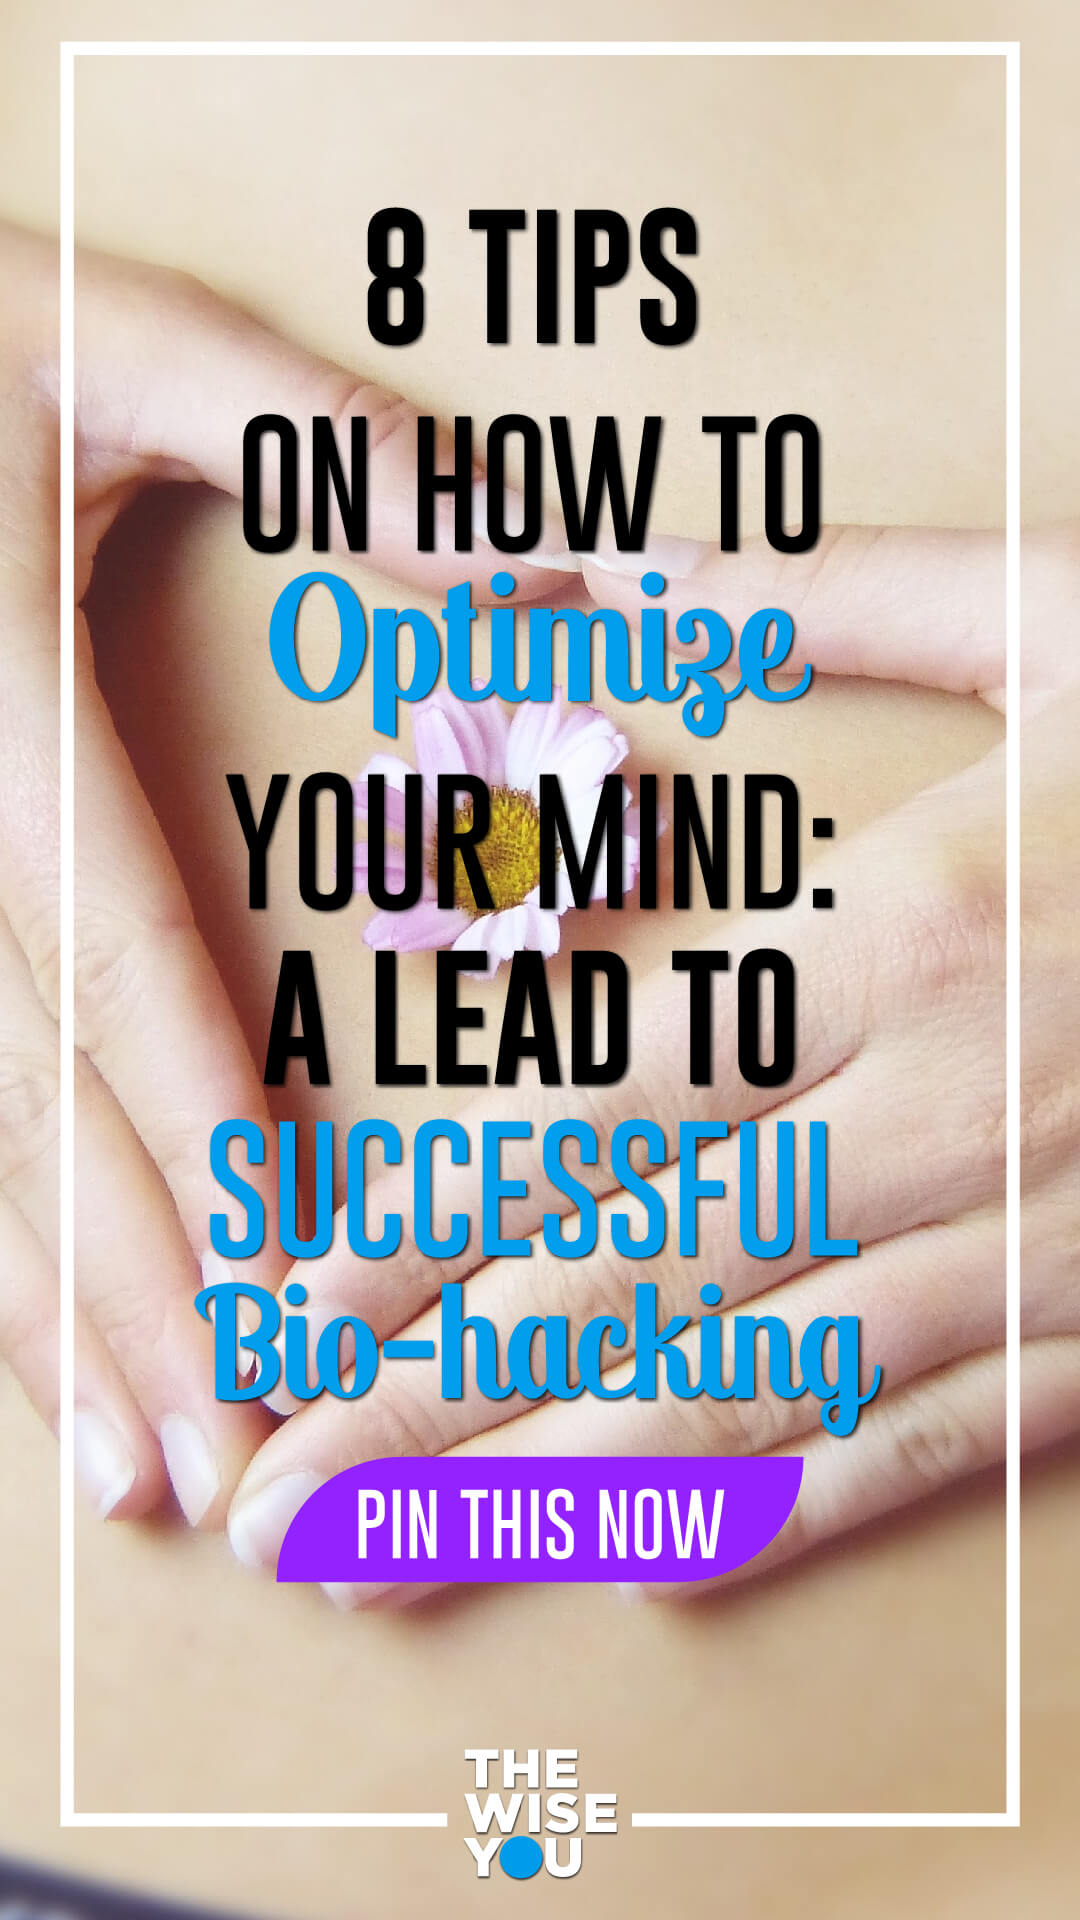 8 Tips On How To Optimize Your Mind: A Lead To Successful Bio-Hacking